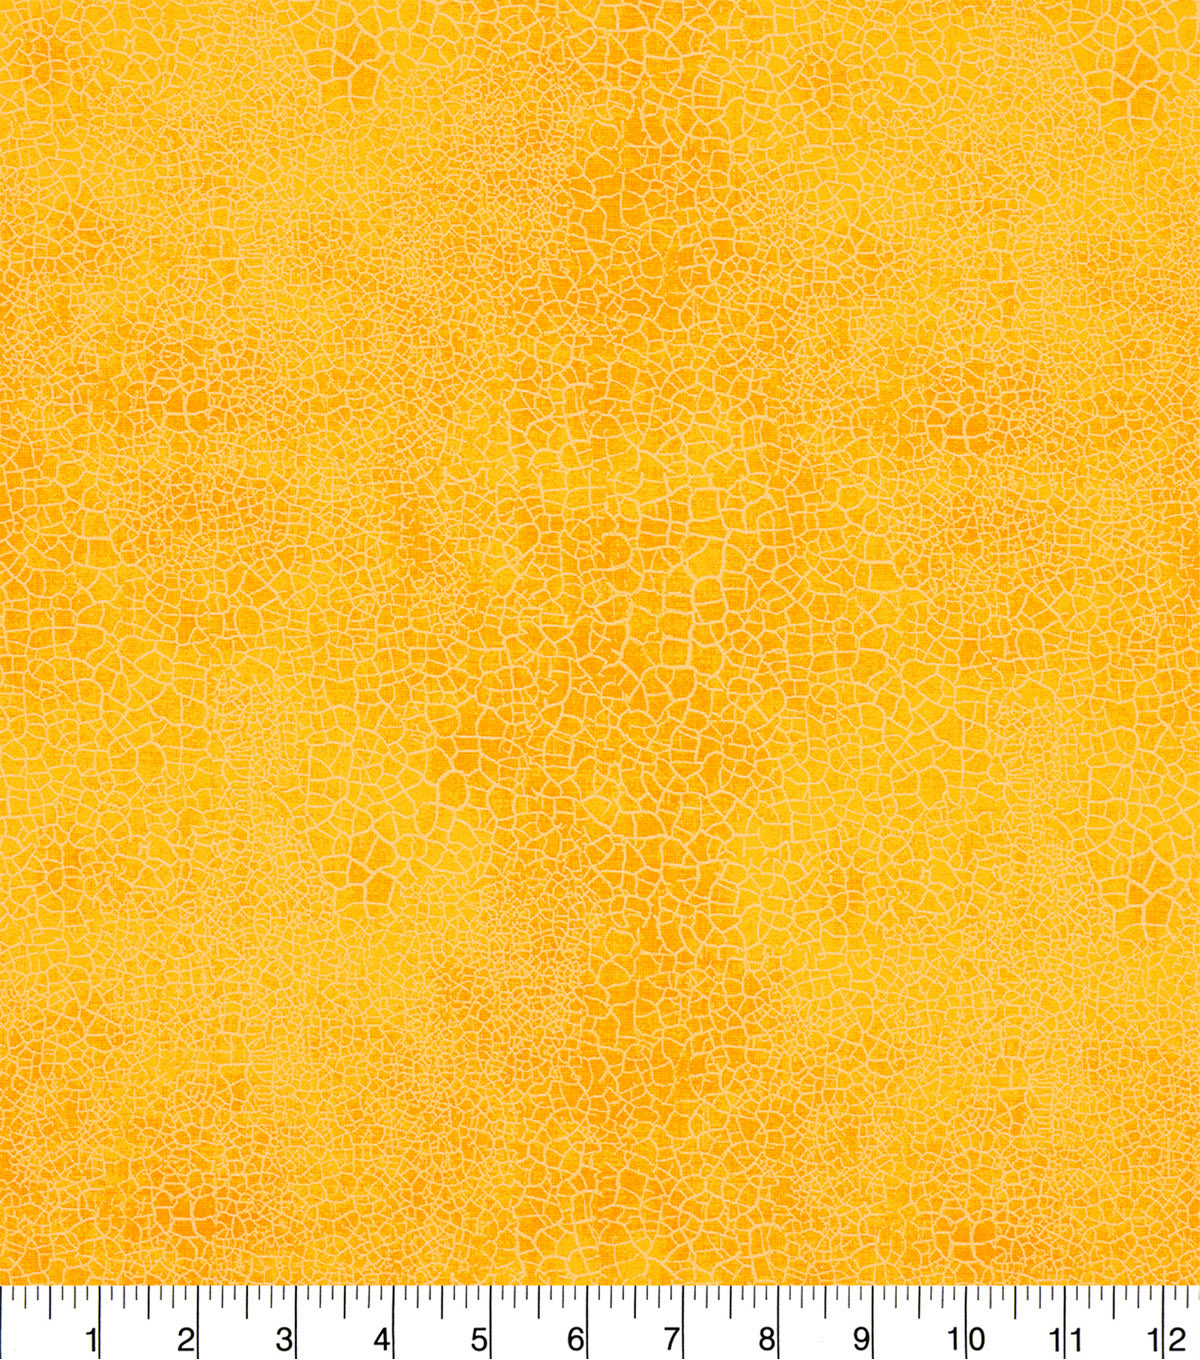 Keepsake Calico Cotton Fabric -Radiant Yellow Snake Blender